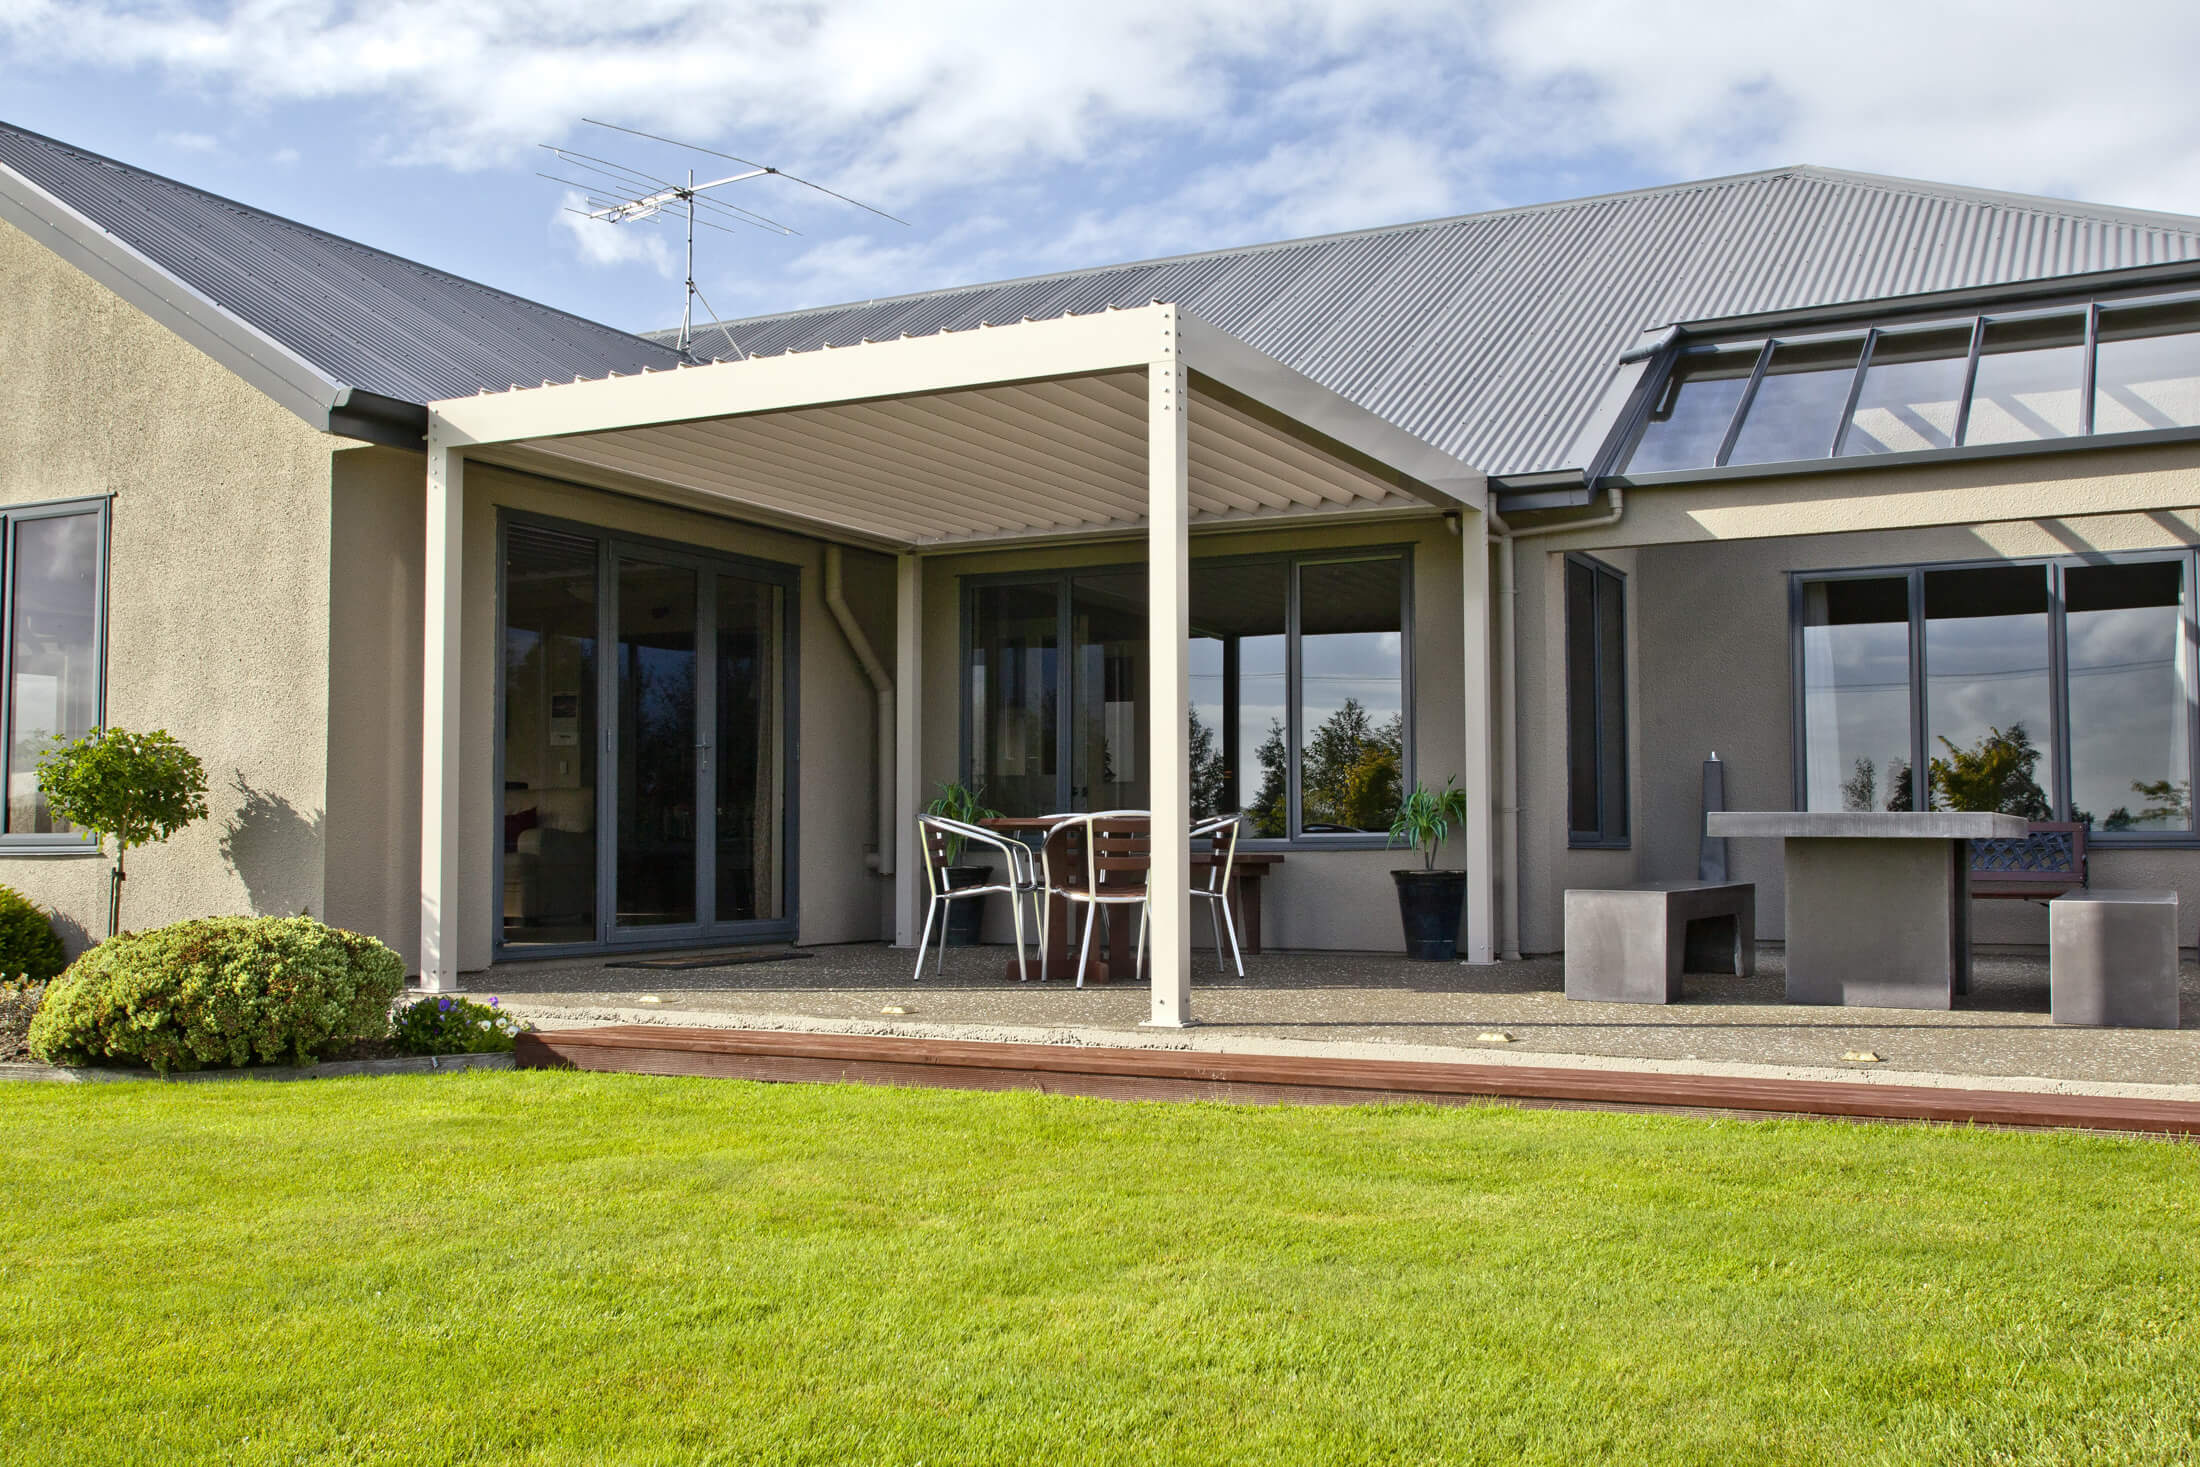 Southland residence project - gallery image 4